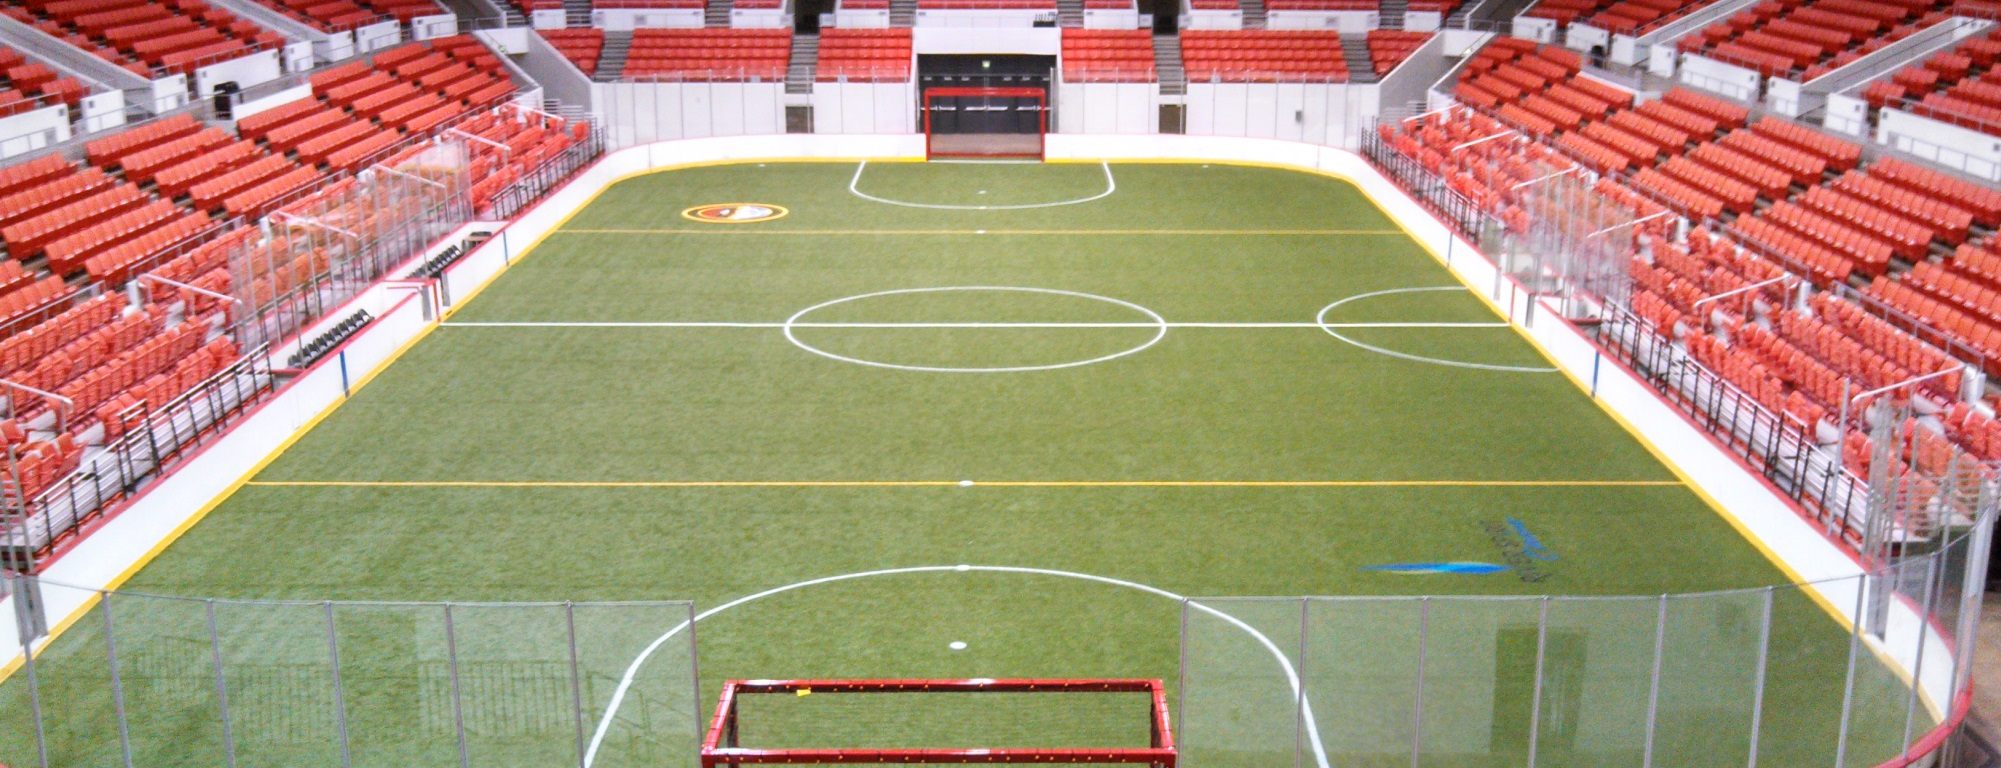 Tulsa-Indoor-Soccer-Turf